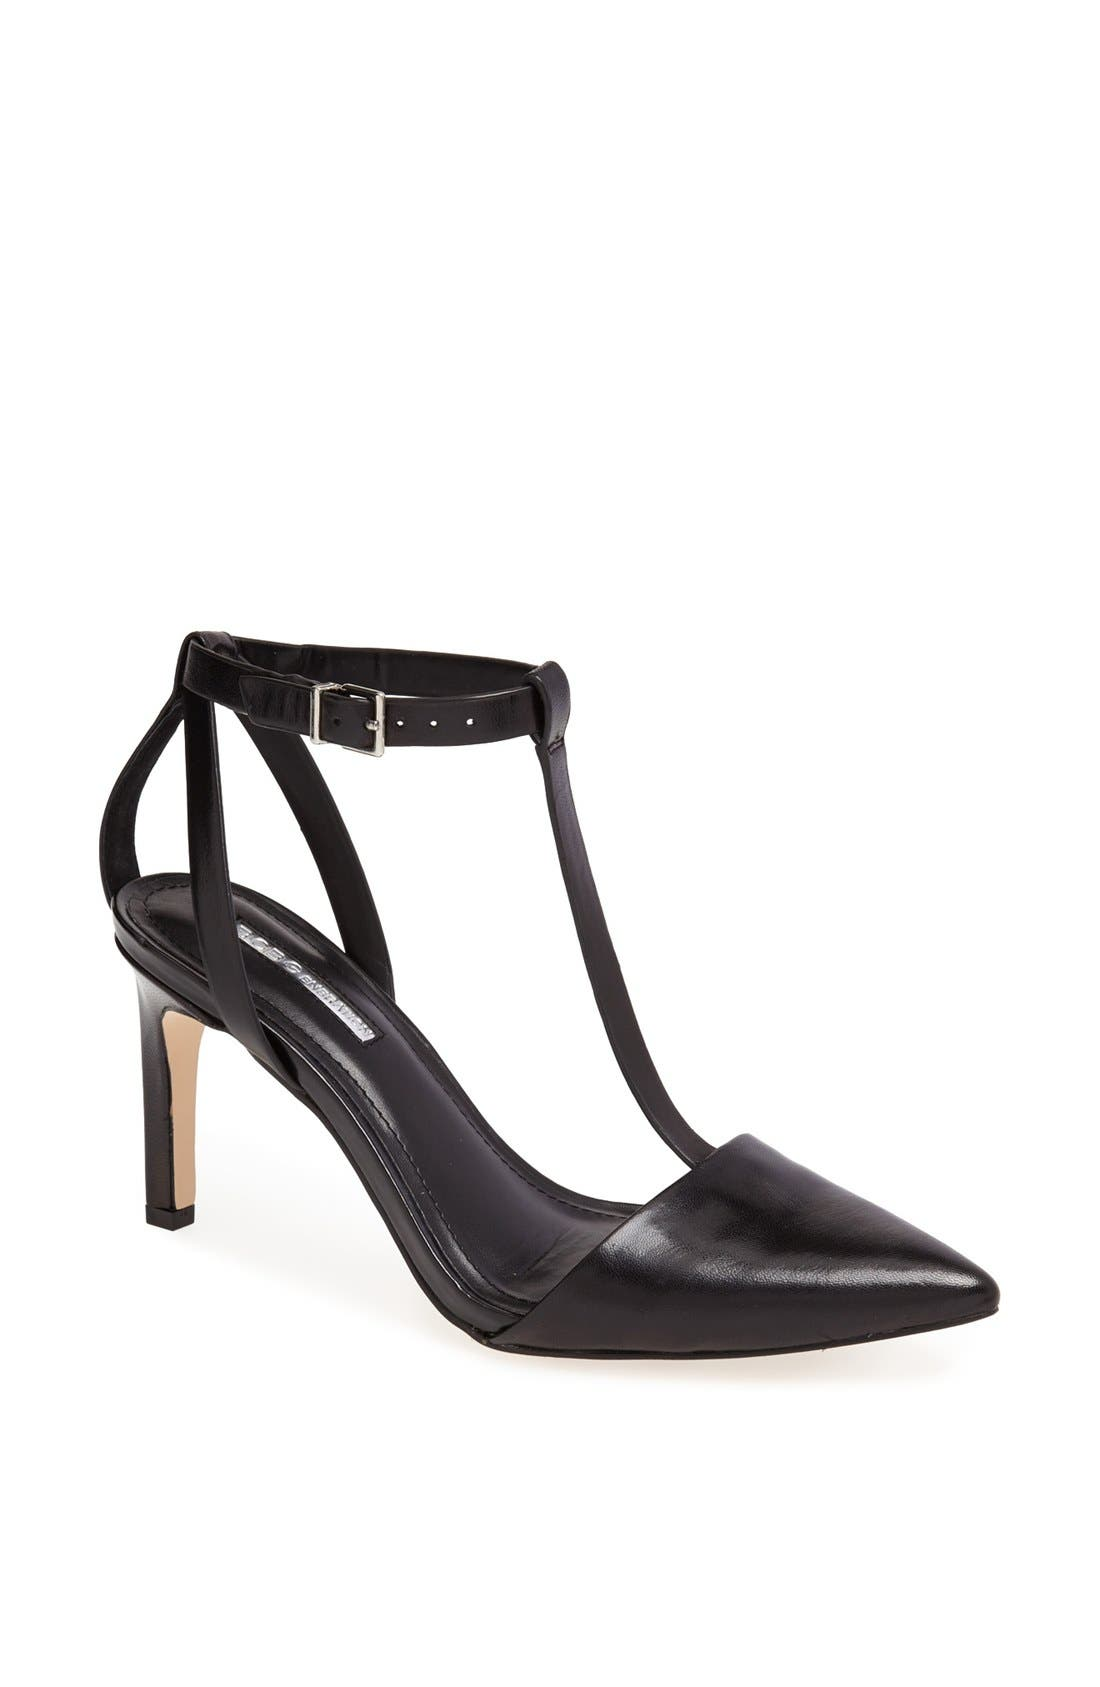 Alternate Image 1 Selected - BCBGeneration 'Zahara' Pump